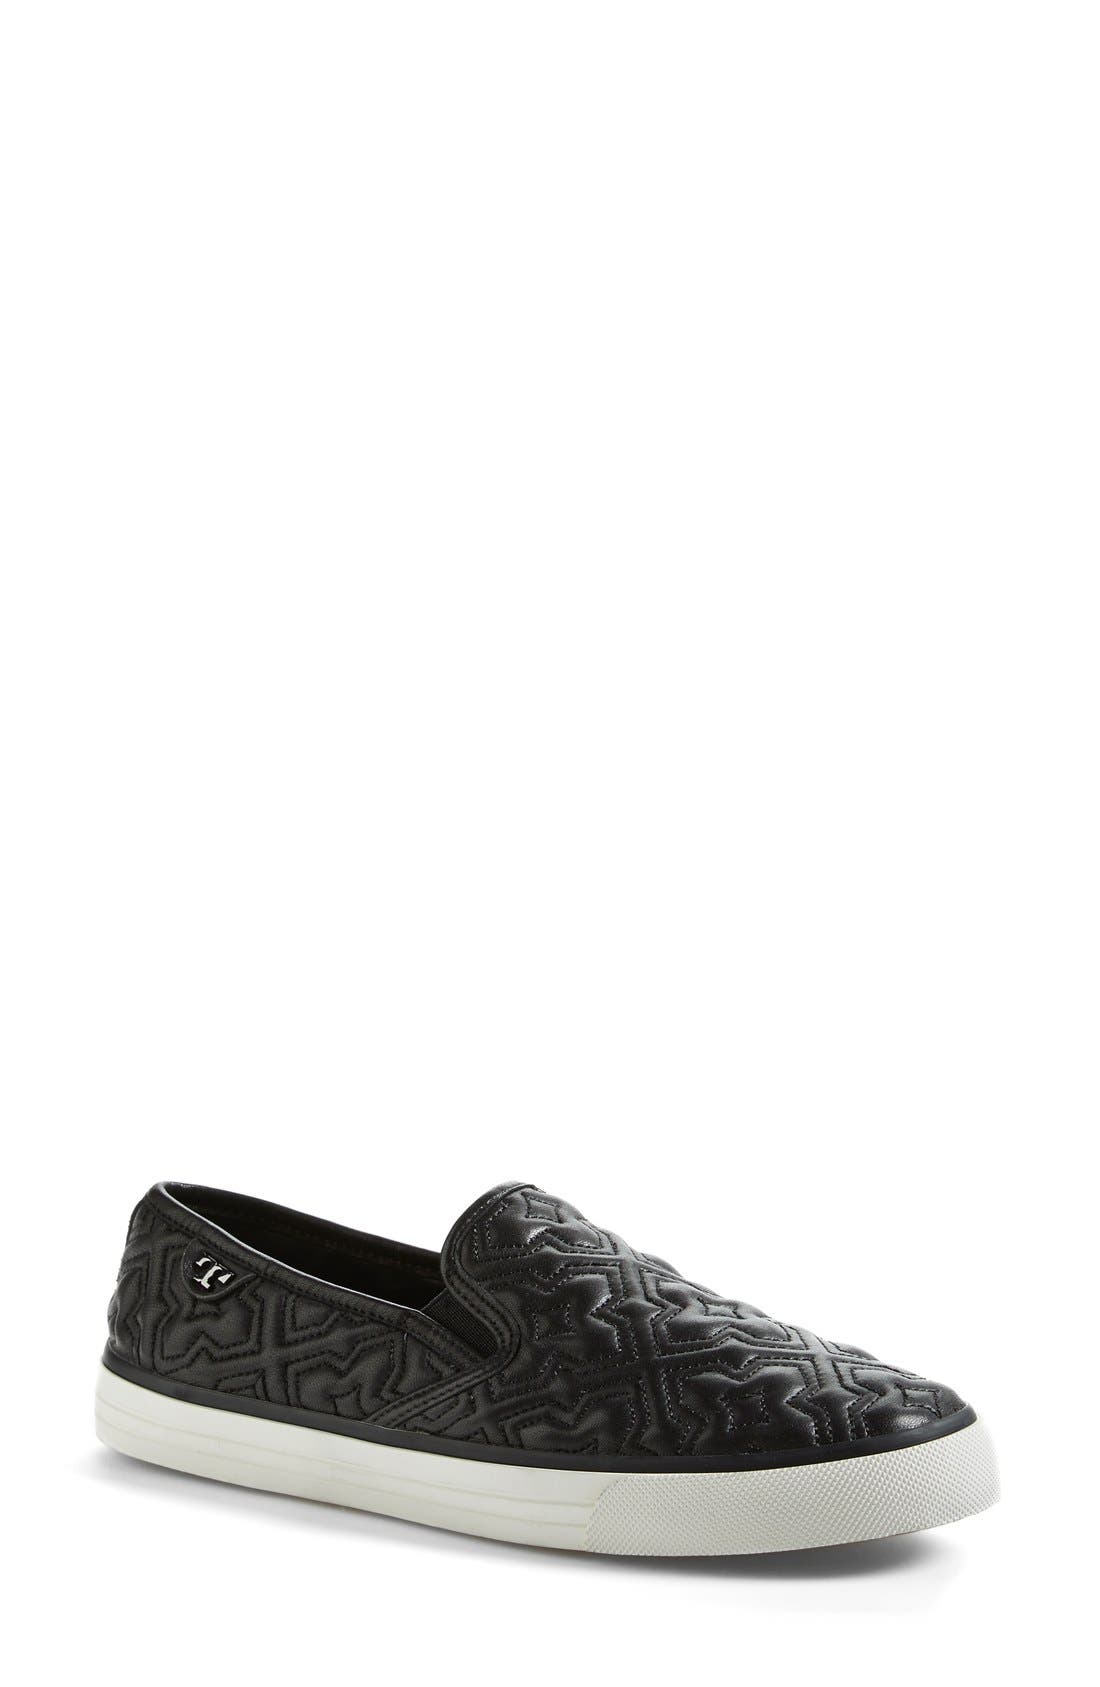 Alternate Image 1 Selected - Tory Burch 'Jesse 2' Quilted Sneaker (Women)